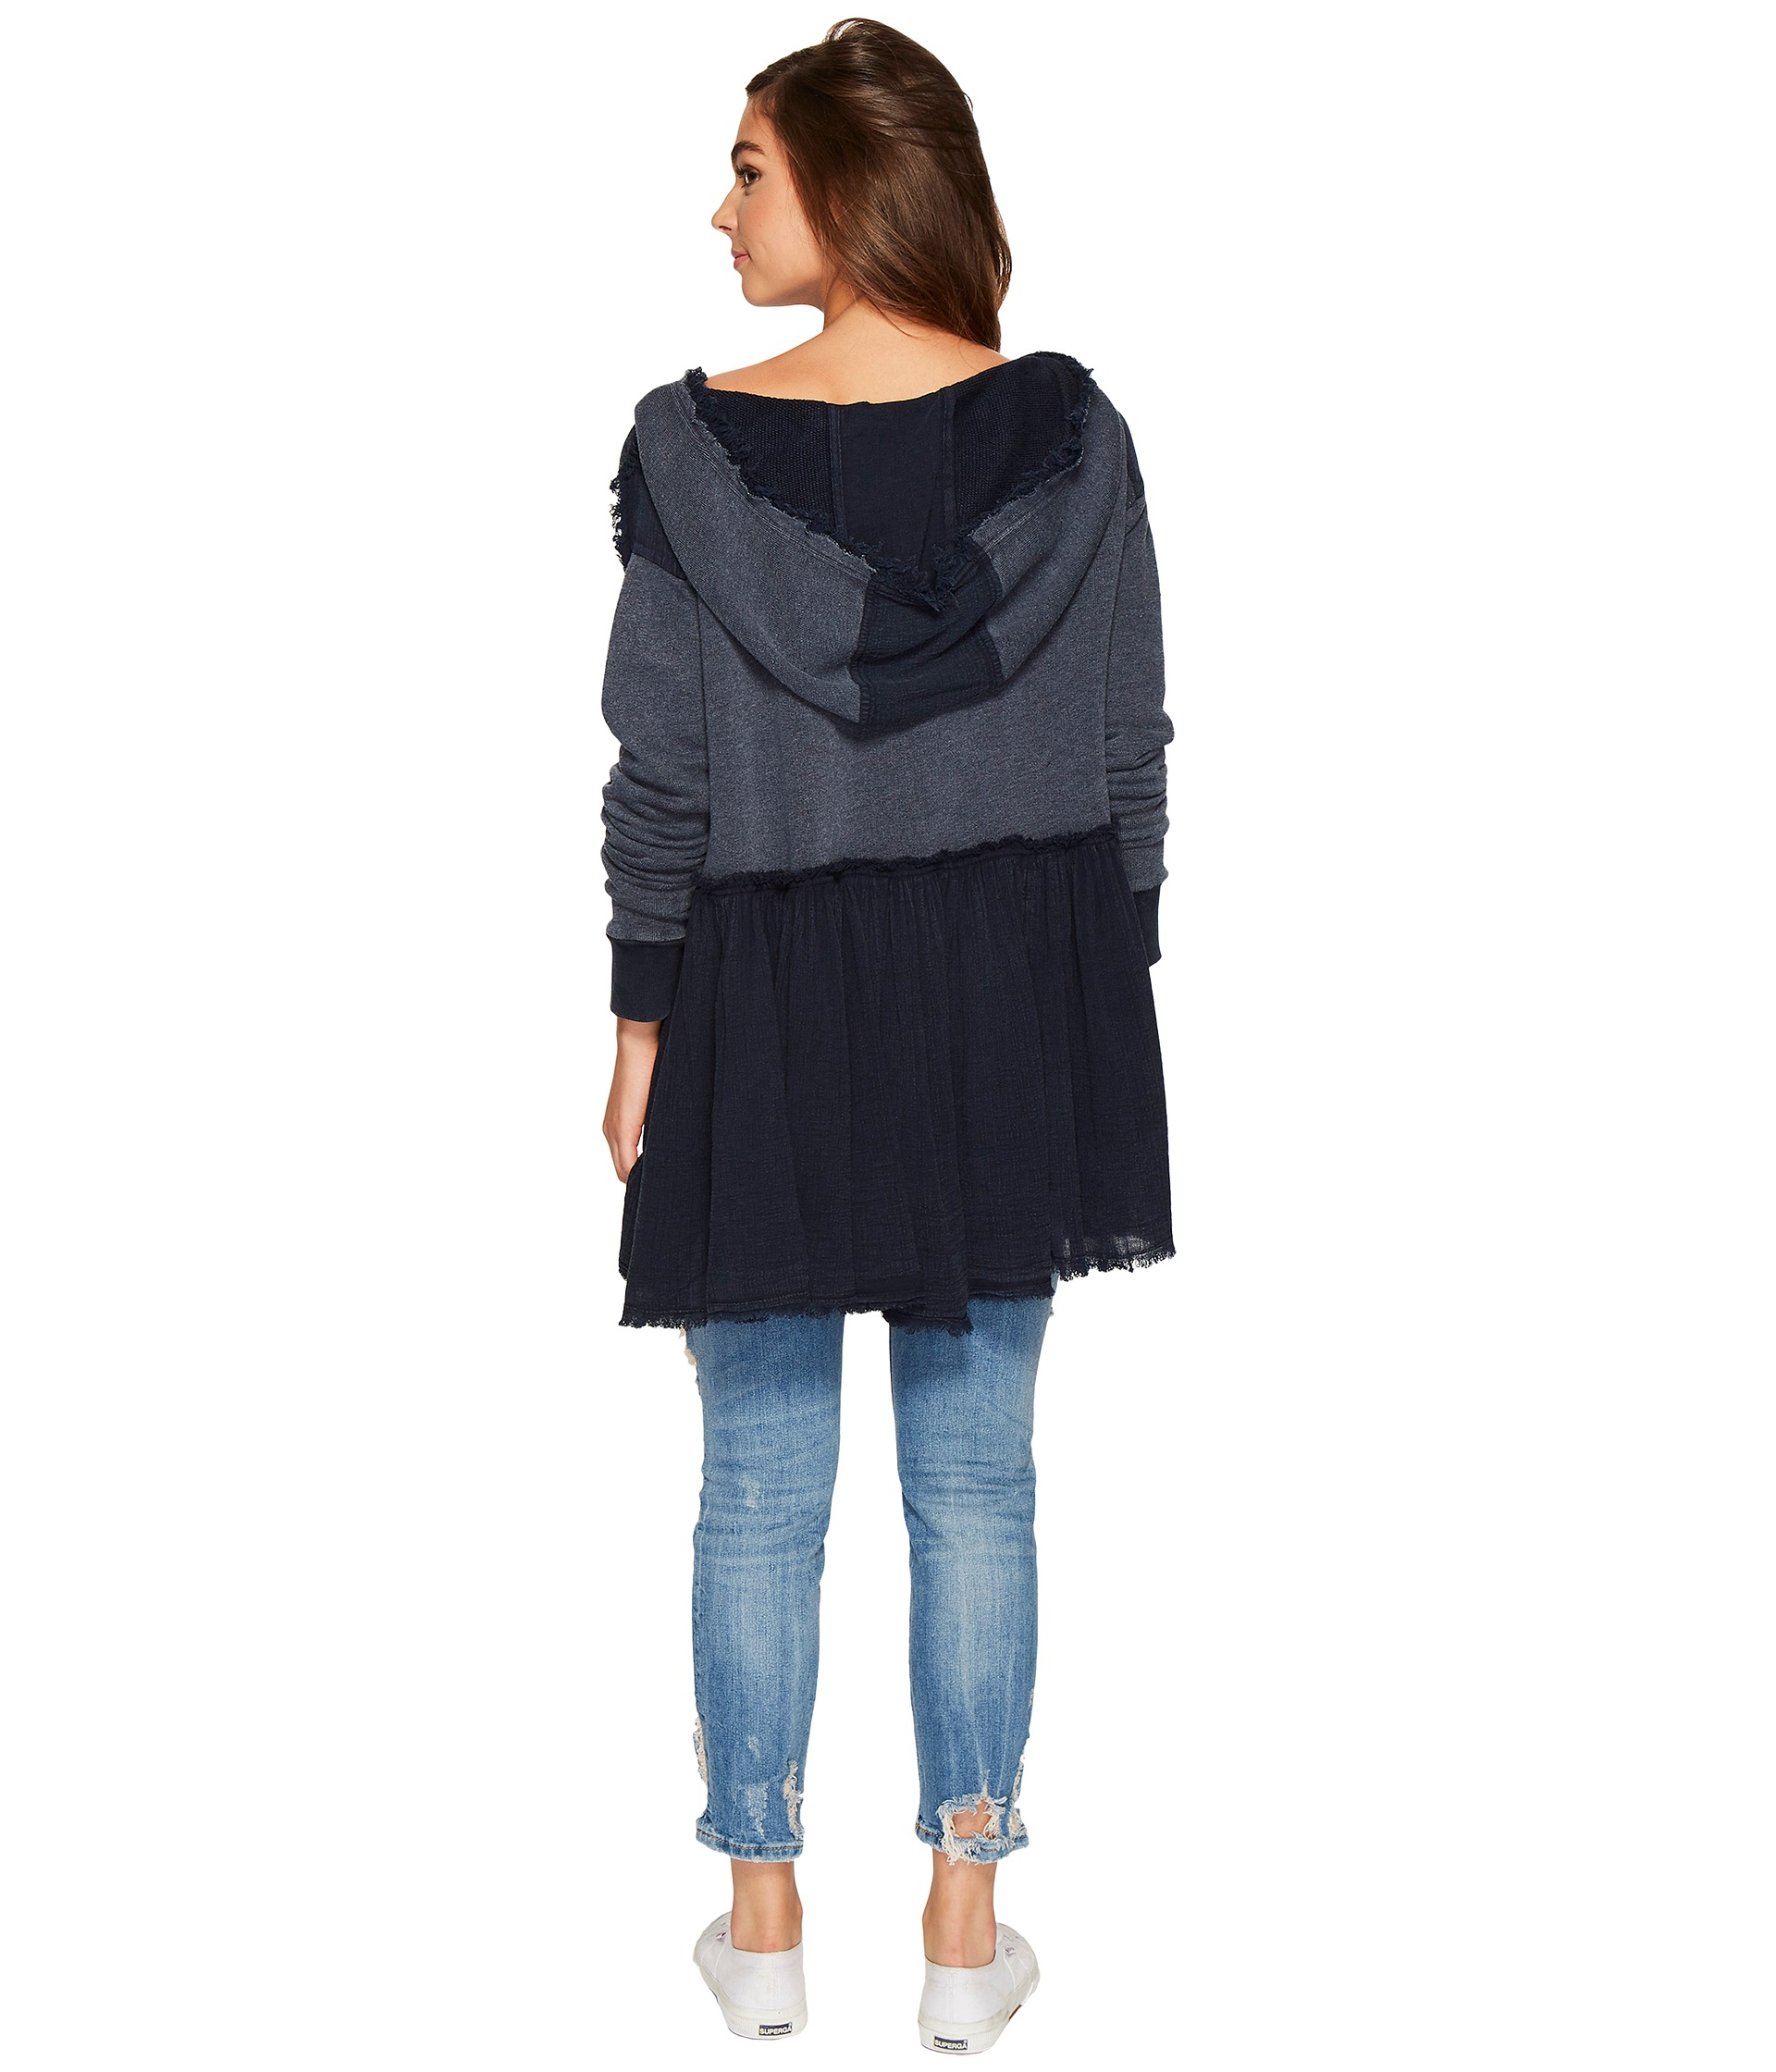 Free People Summer Dreams Pullover at Zappos.com